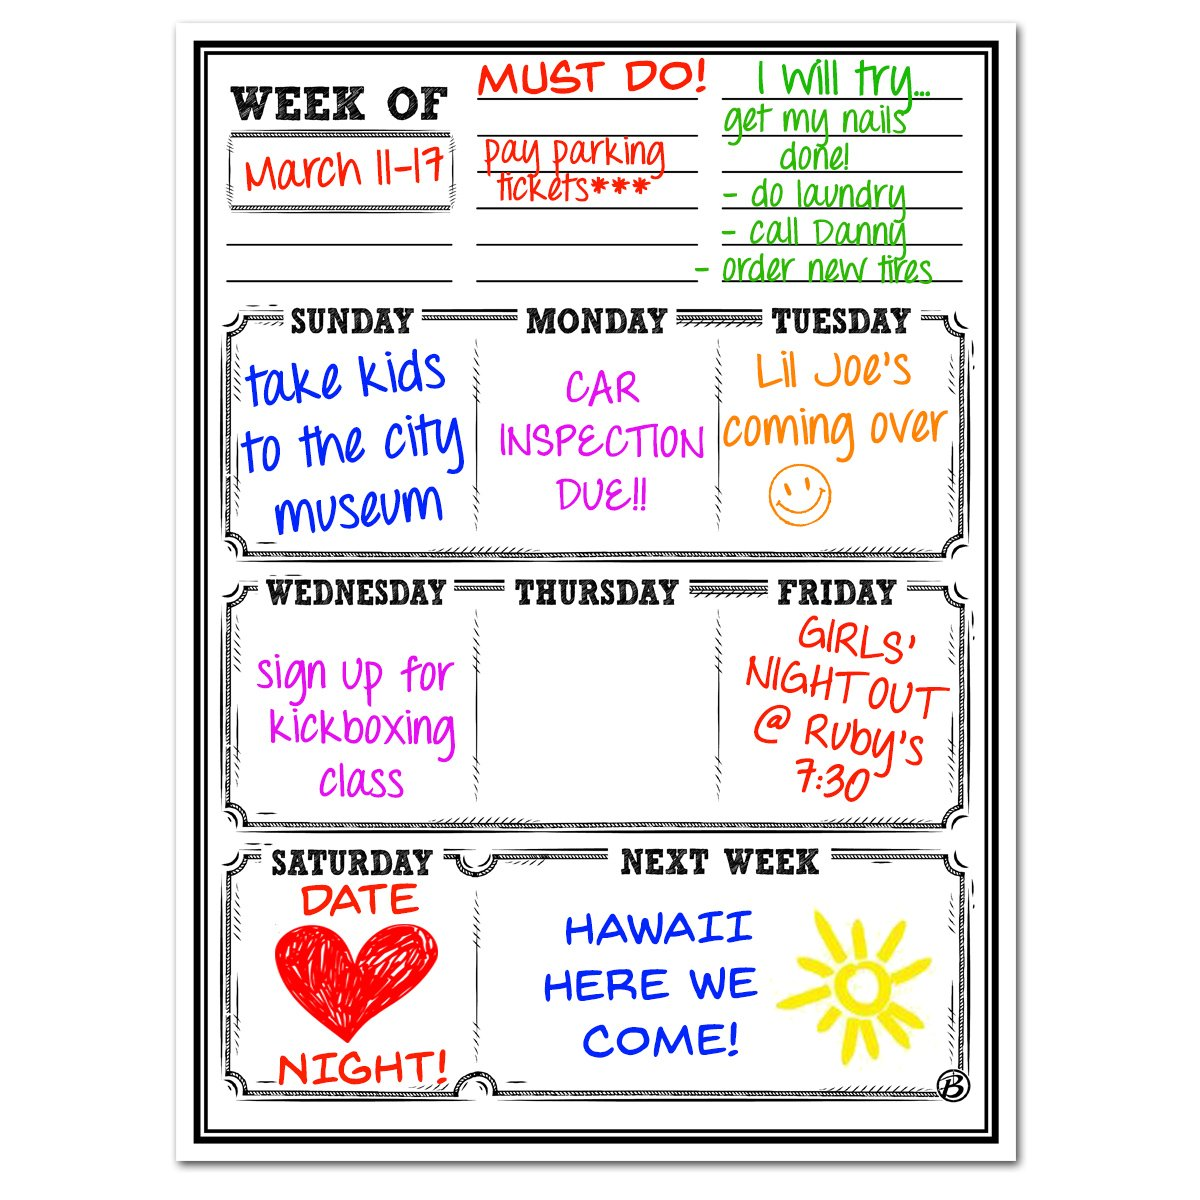 Smart Planner: Magnetic Dry Erase Weekly Planner | Vertical Refrigerator Whiteboard | 30 Mil Thick Magnet | Use as Weekly Calendar, Meal, Grocery, To Do or Chore List